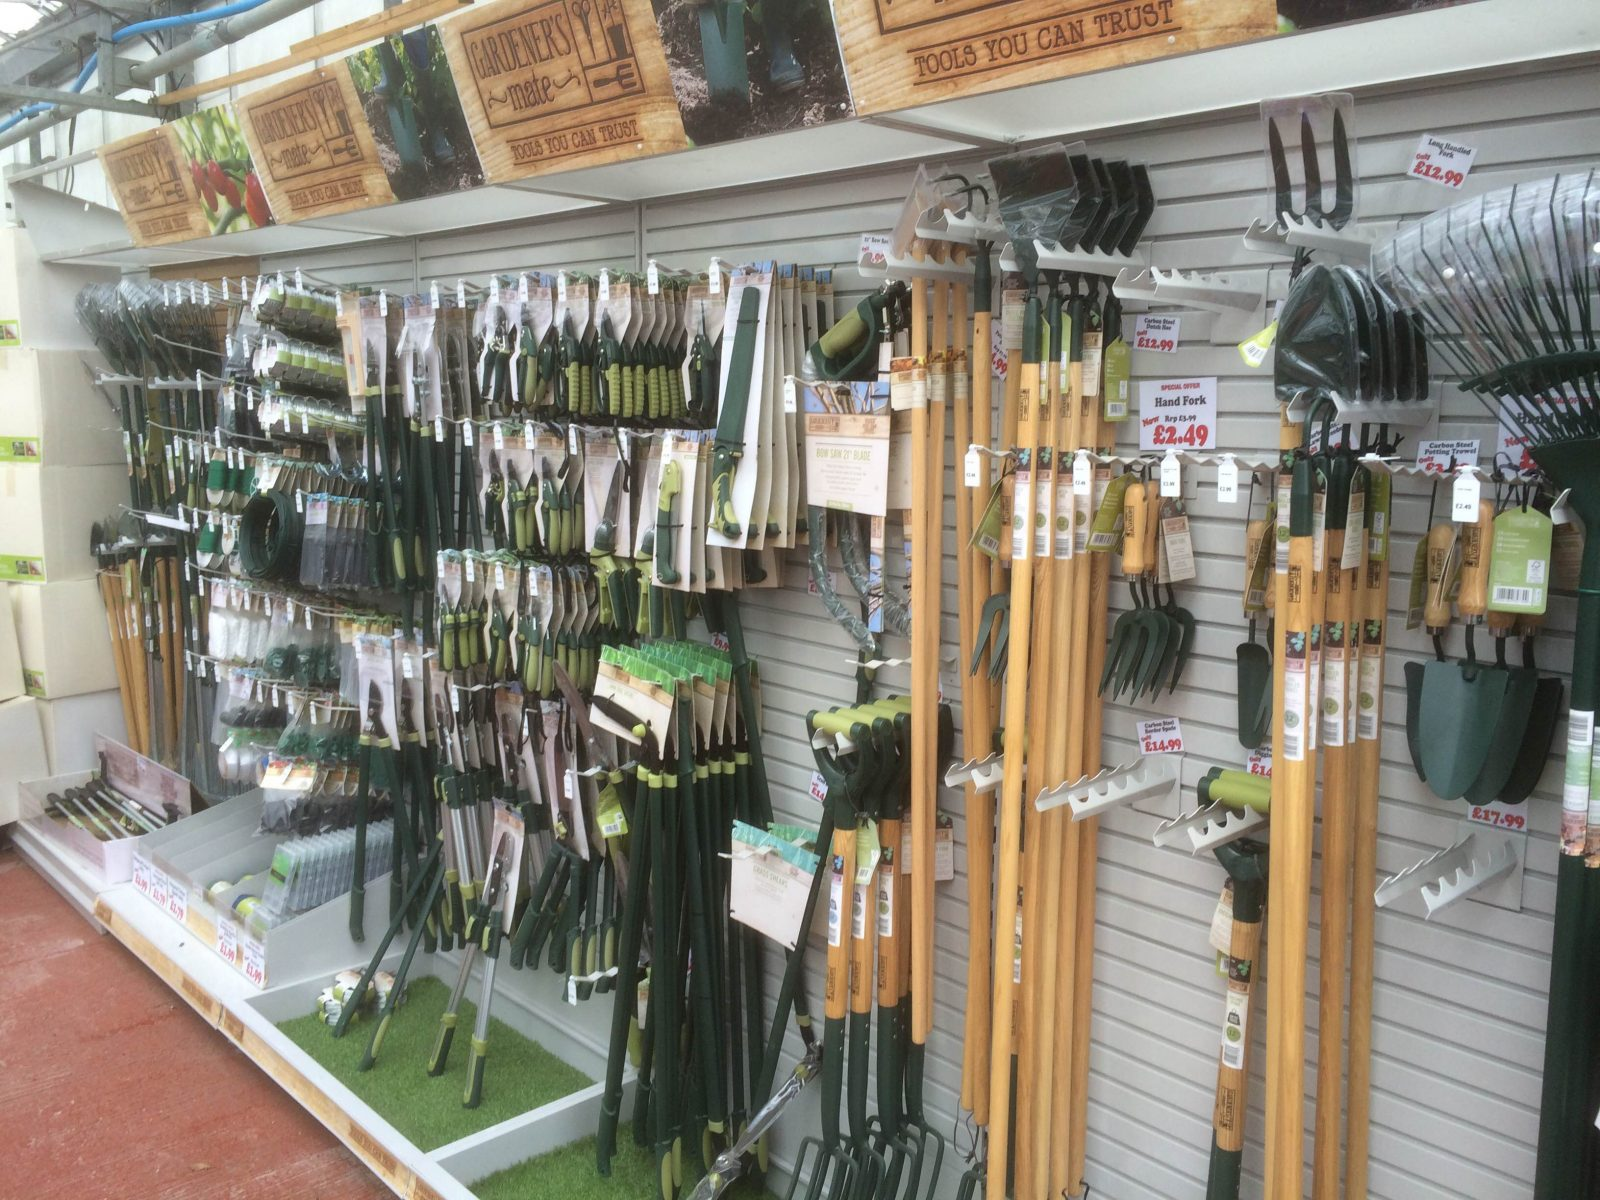 Garden tools sharnford garden centre for New gardening tools 2016